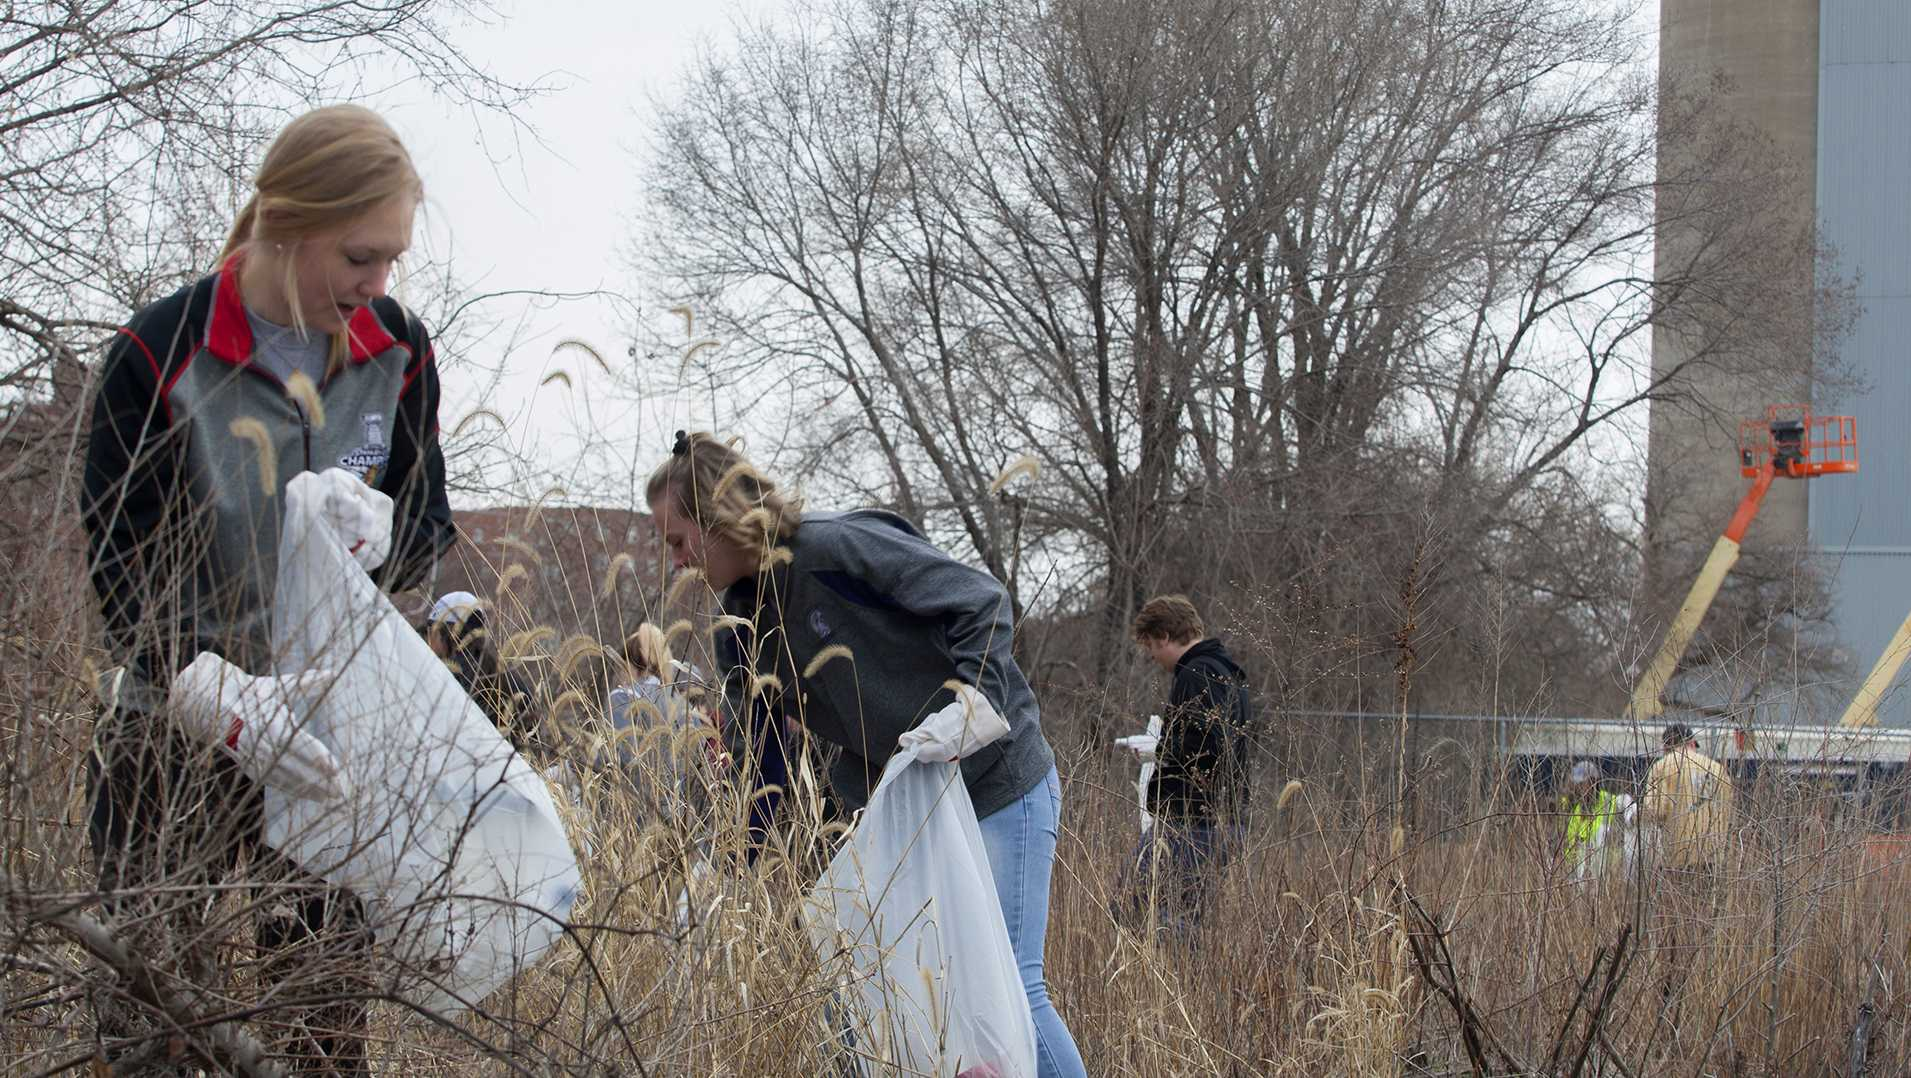 Iowa River cleanup draws large crowds to beautify riverbanks